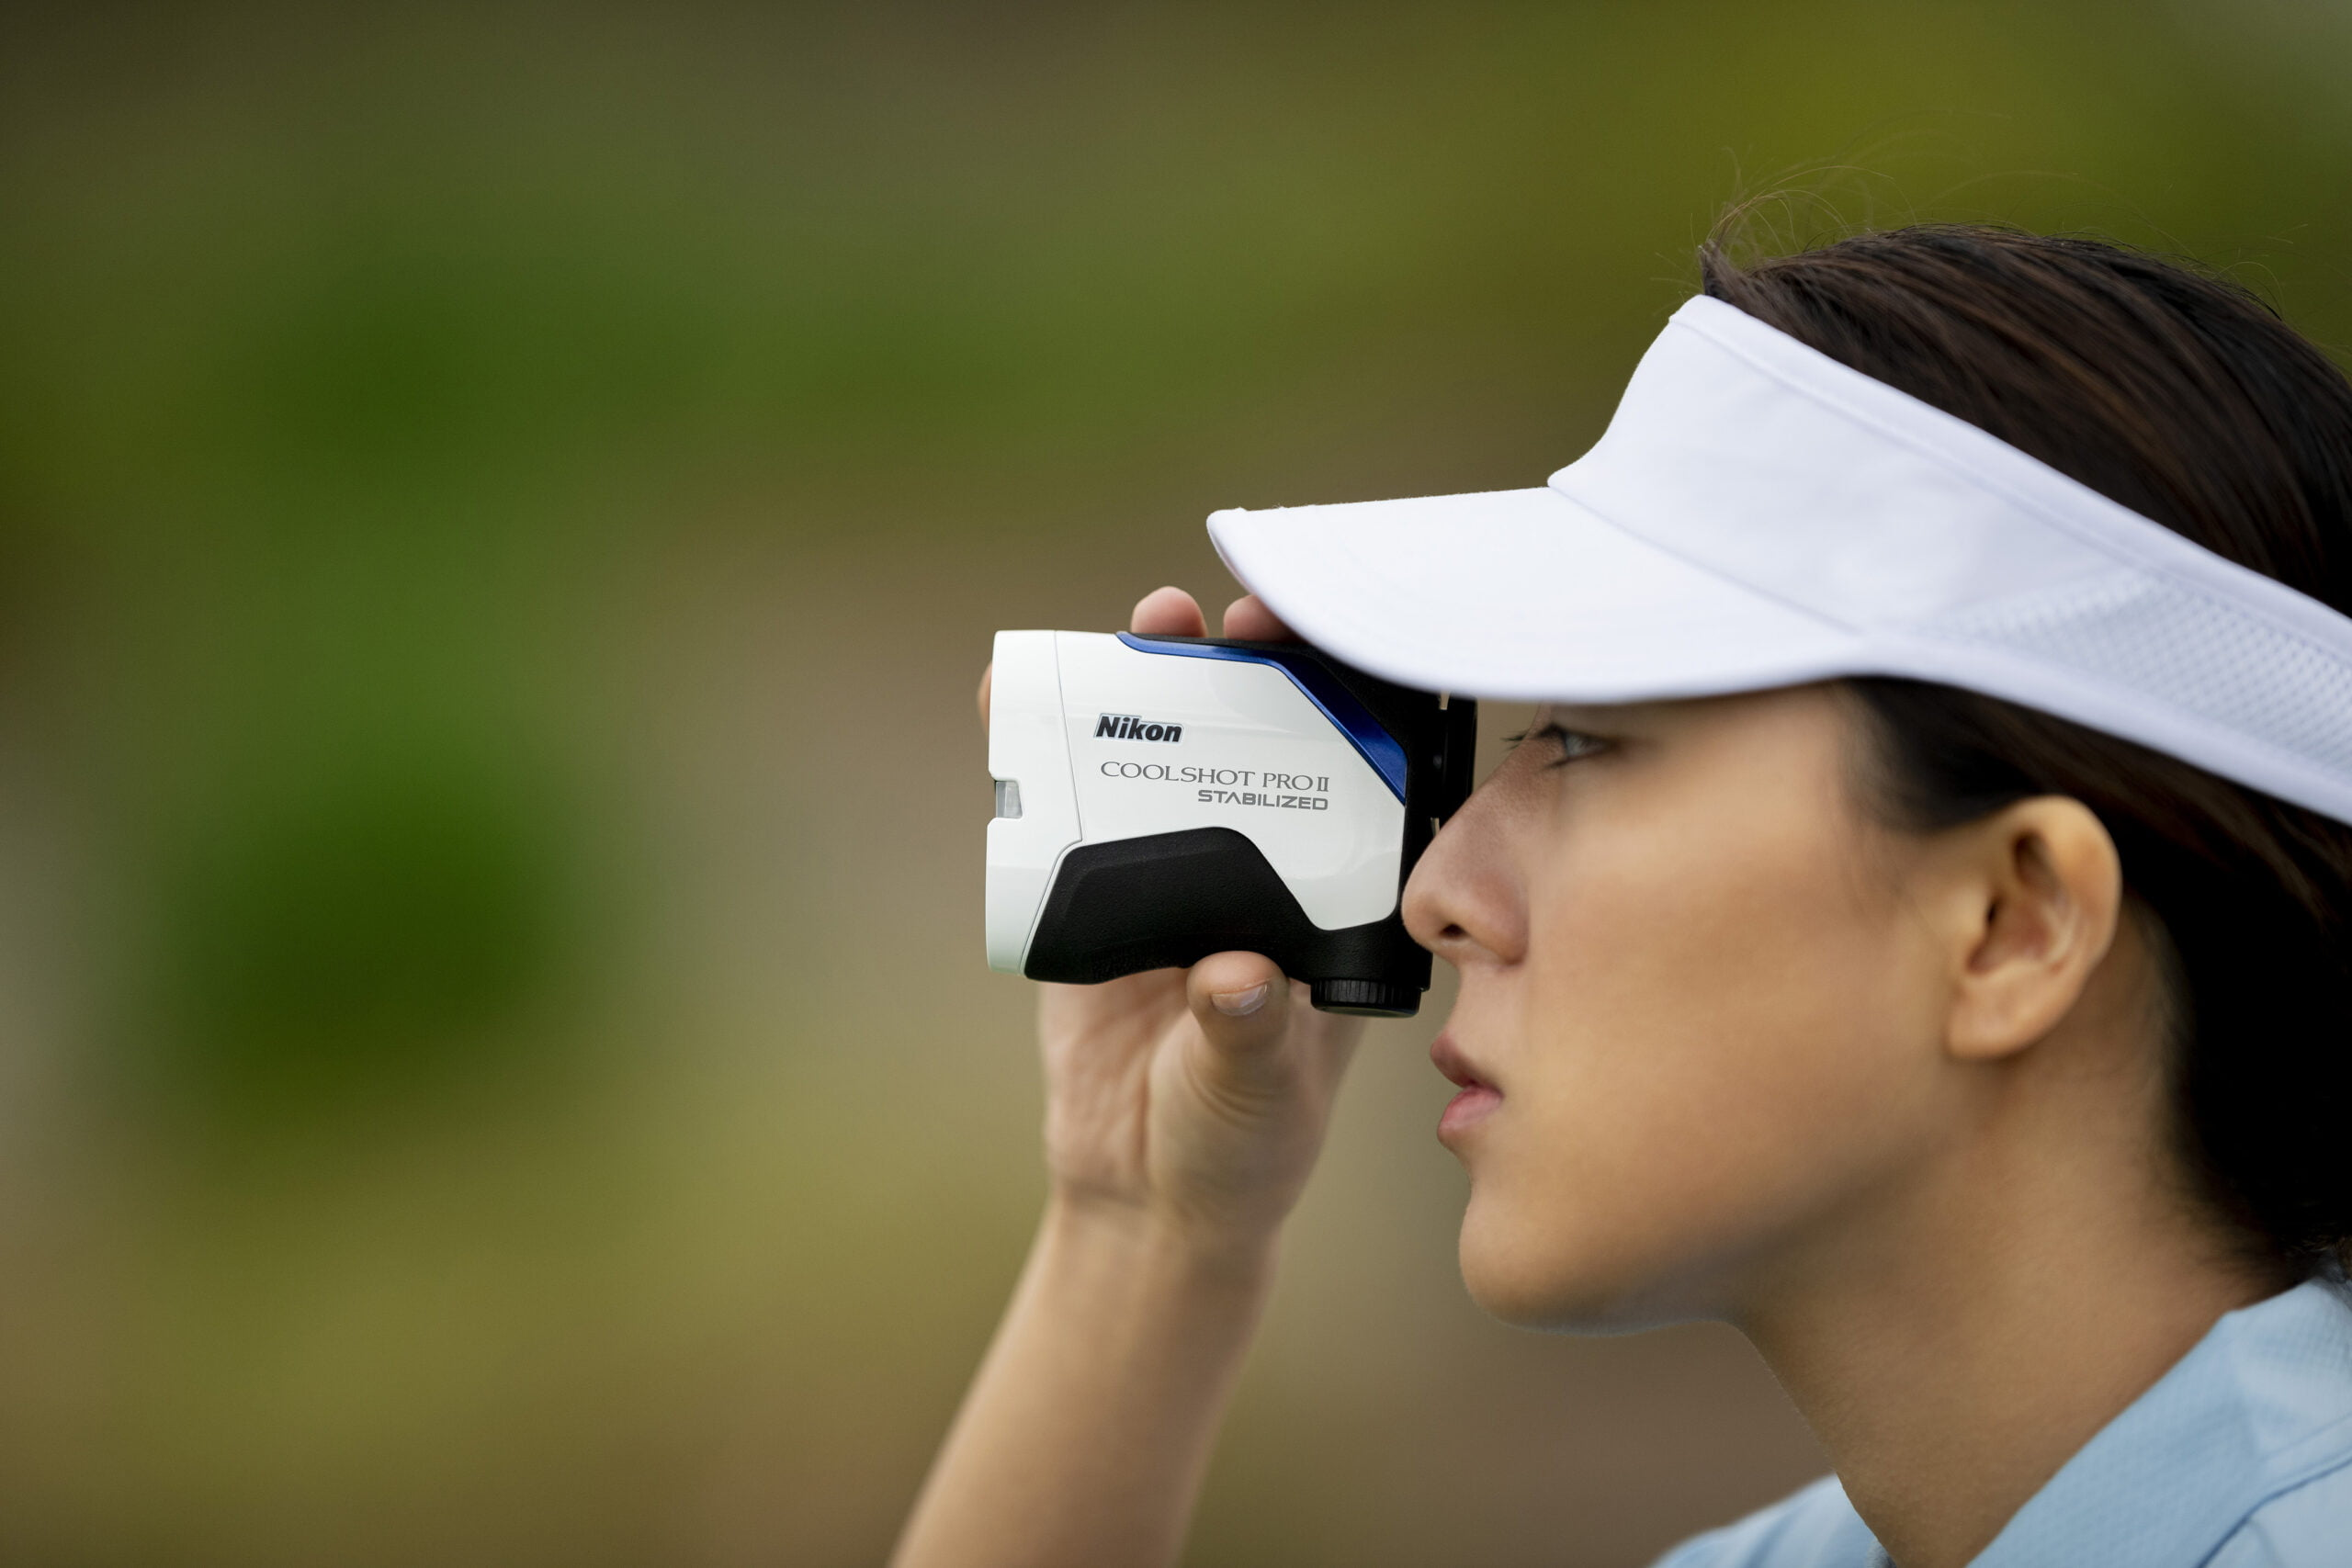 NIKON'S TWO NEW LASER RANGEFINDERS BRING a GOLFER'S GAME to the NEXT LEVEL: COOLSHOT PROII STABILIZED and COOLSHOT 50i